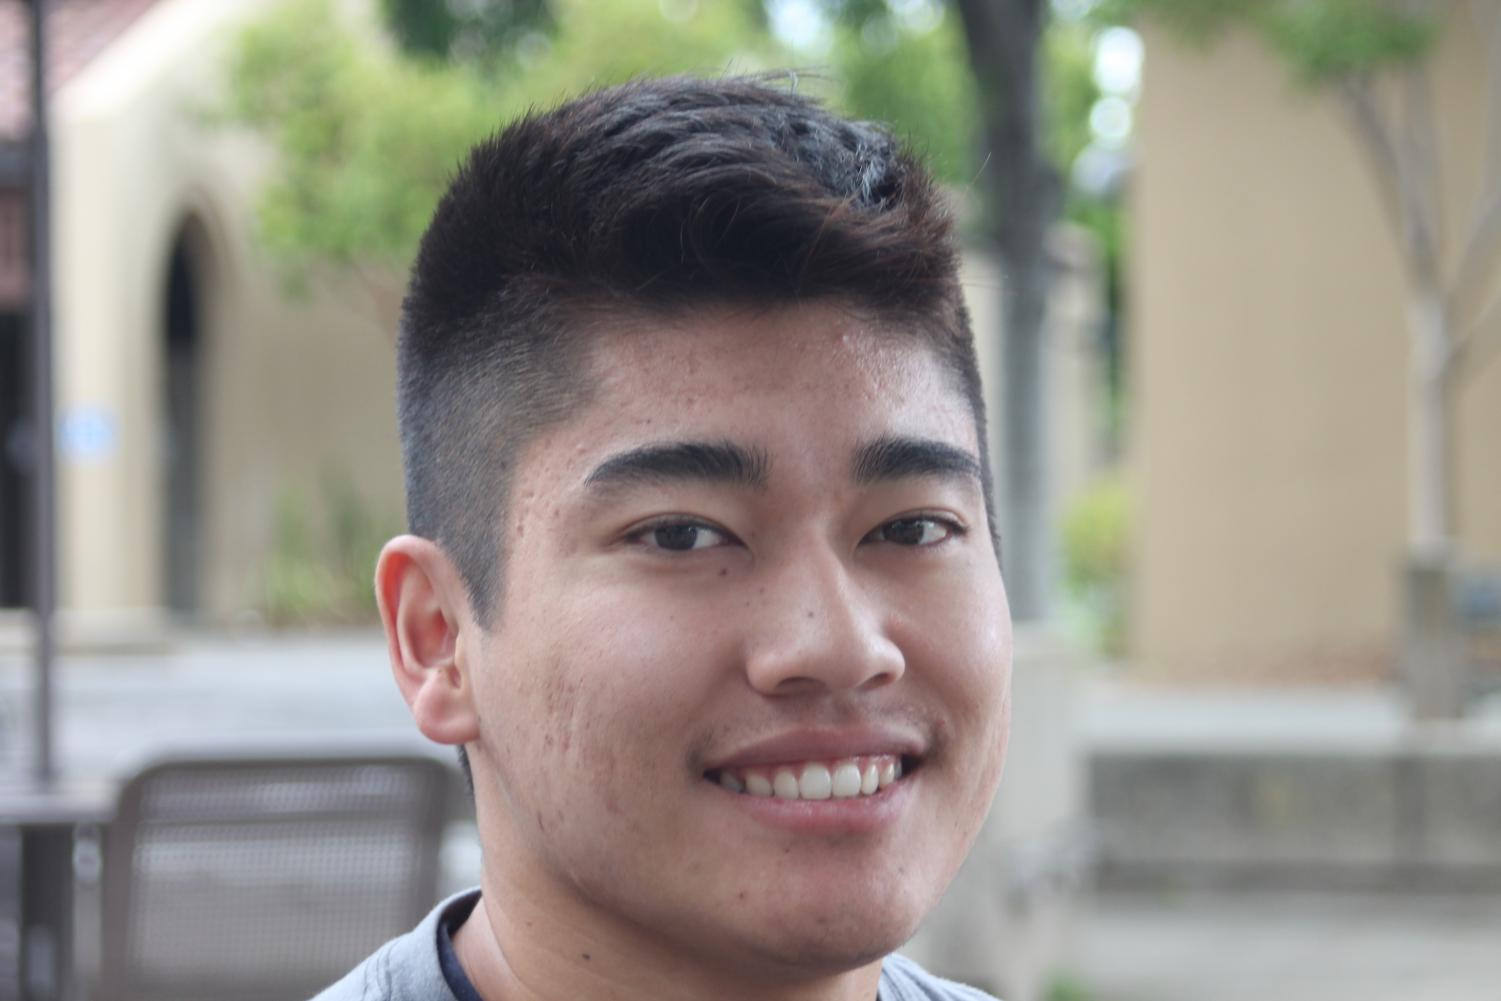 Jason+Minagawa%2C+20%2C+business%0A%E2%80%9CThey+shouldn%E2%80%99t+get+paid+but+I+like+the+idea+of++a+scholarship+if+they+can+show+that+they+are+working+hard.%E2%80%9D%0A